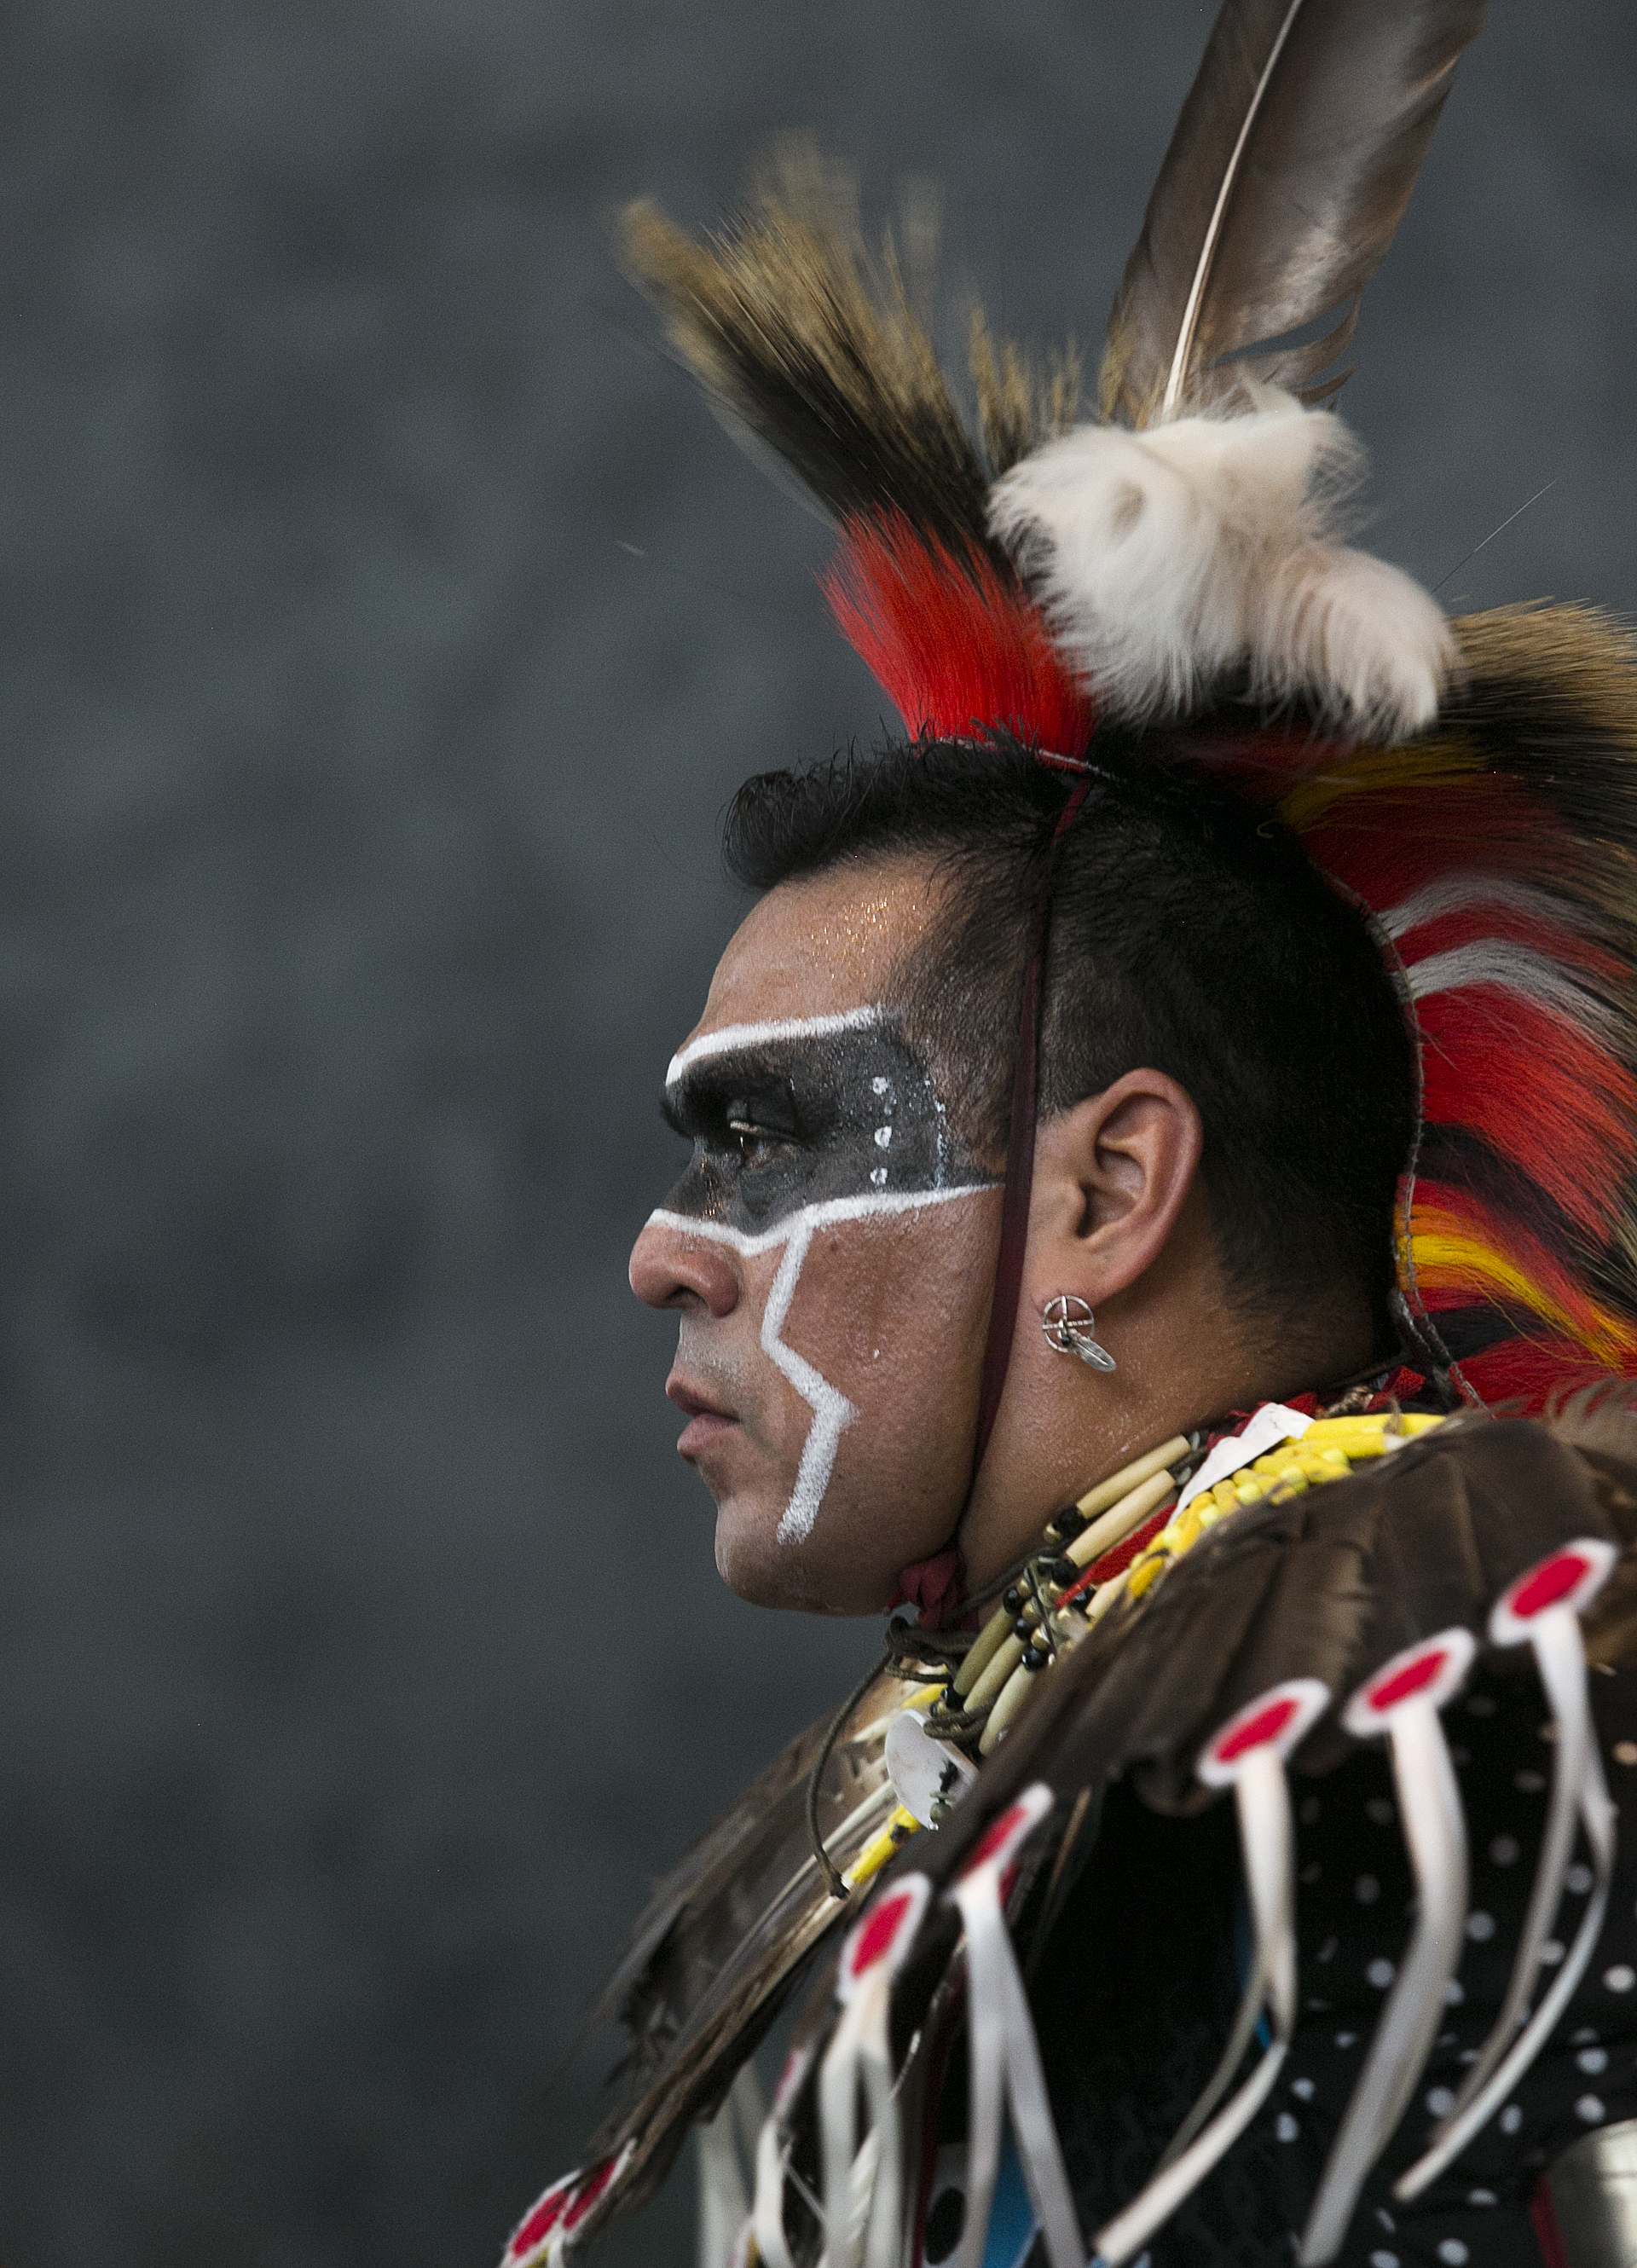 Raul Figueroa participates in an intertribal dance Saturday, April 2 at the CC March Pow wow where intertribal dances were performed for visitors to the 2017 CC Native American Exhibition Powwow.